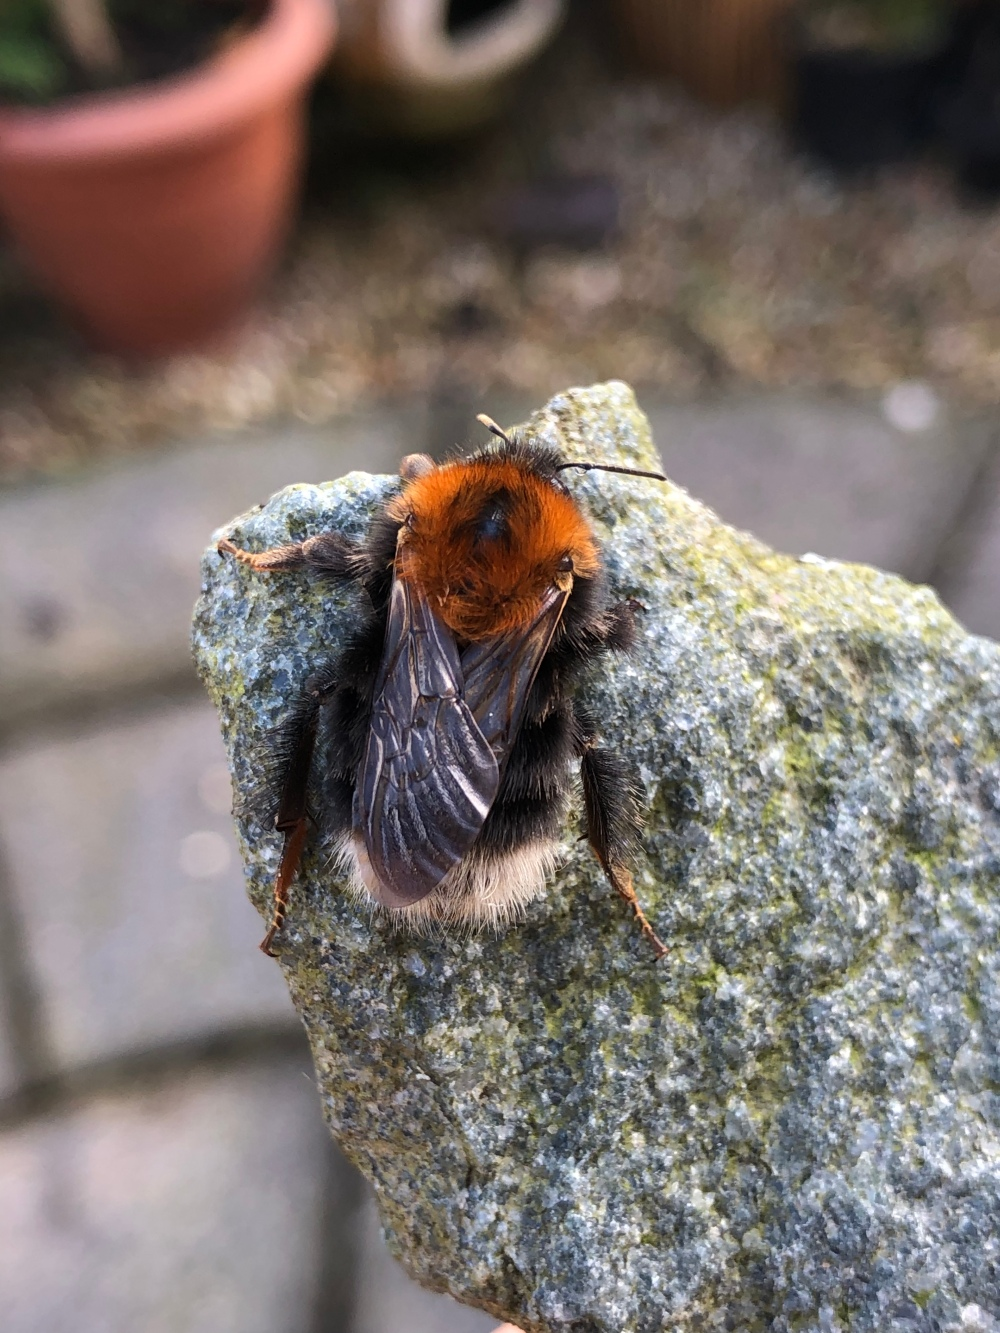 A queen tree bumblebee (Bombus hypnorum) showing distinctive ginger thorax, black abdomen and white tail